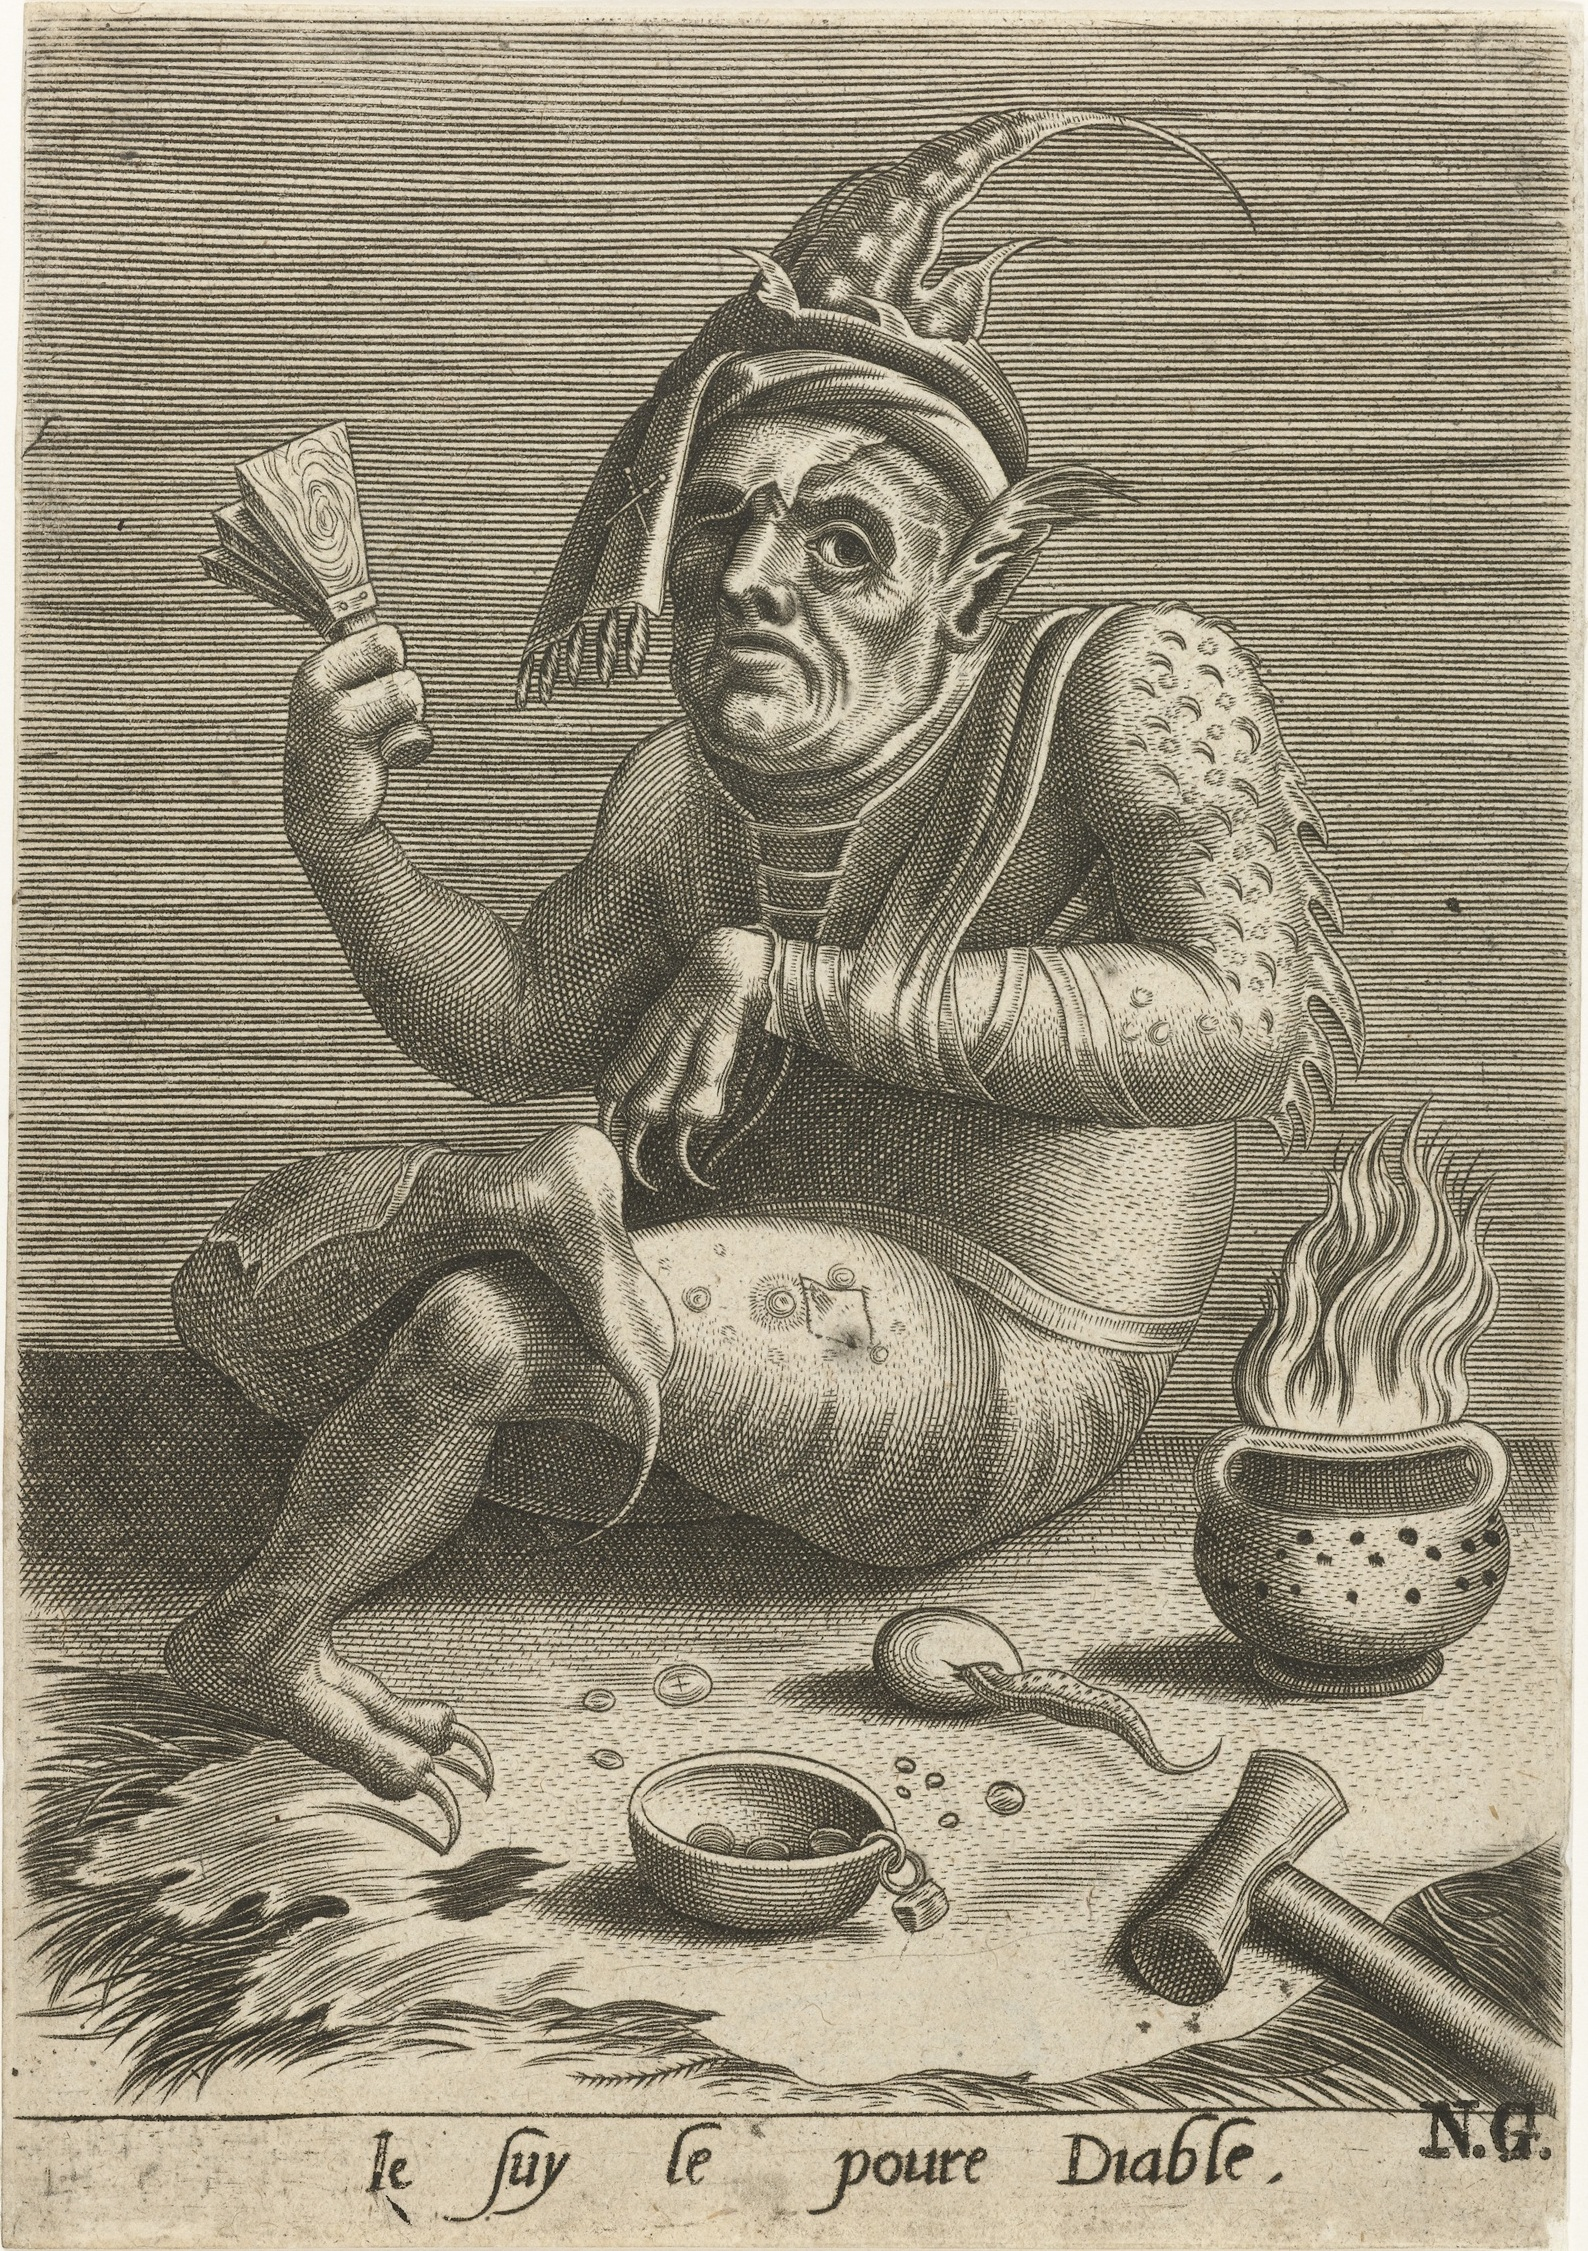 File:Anonymous - Je suy le poure Diable - 1500-1599.jpg